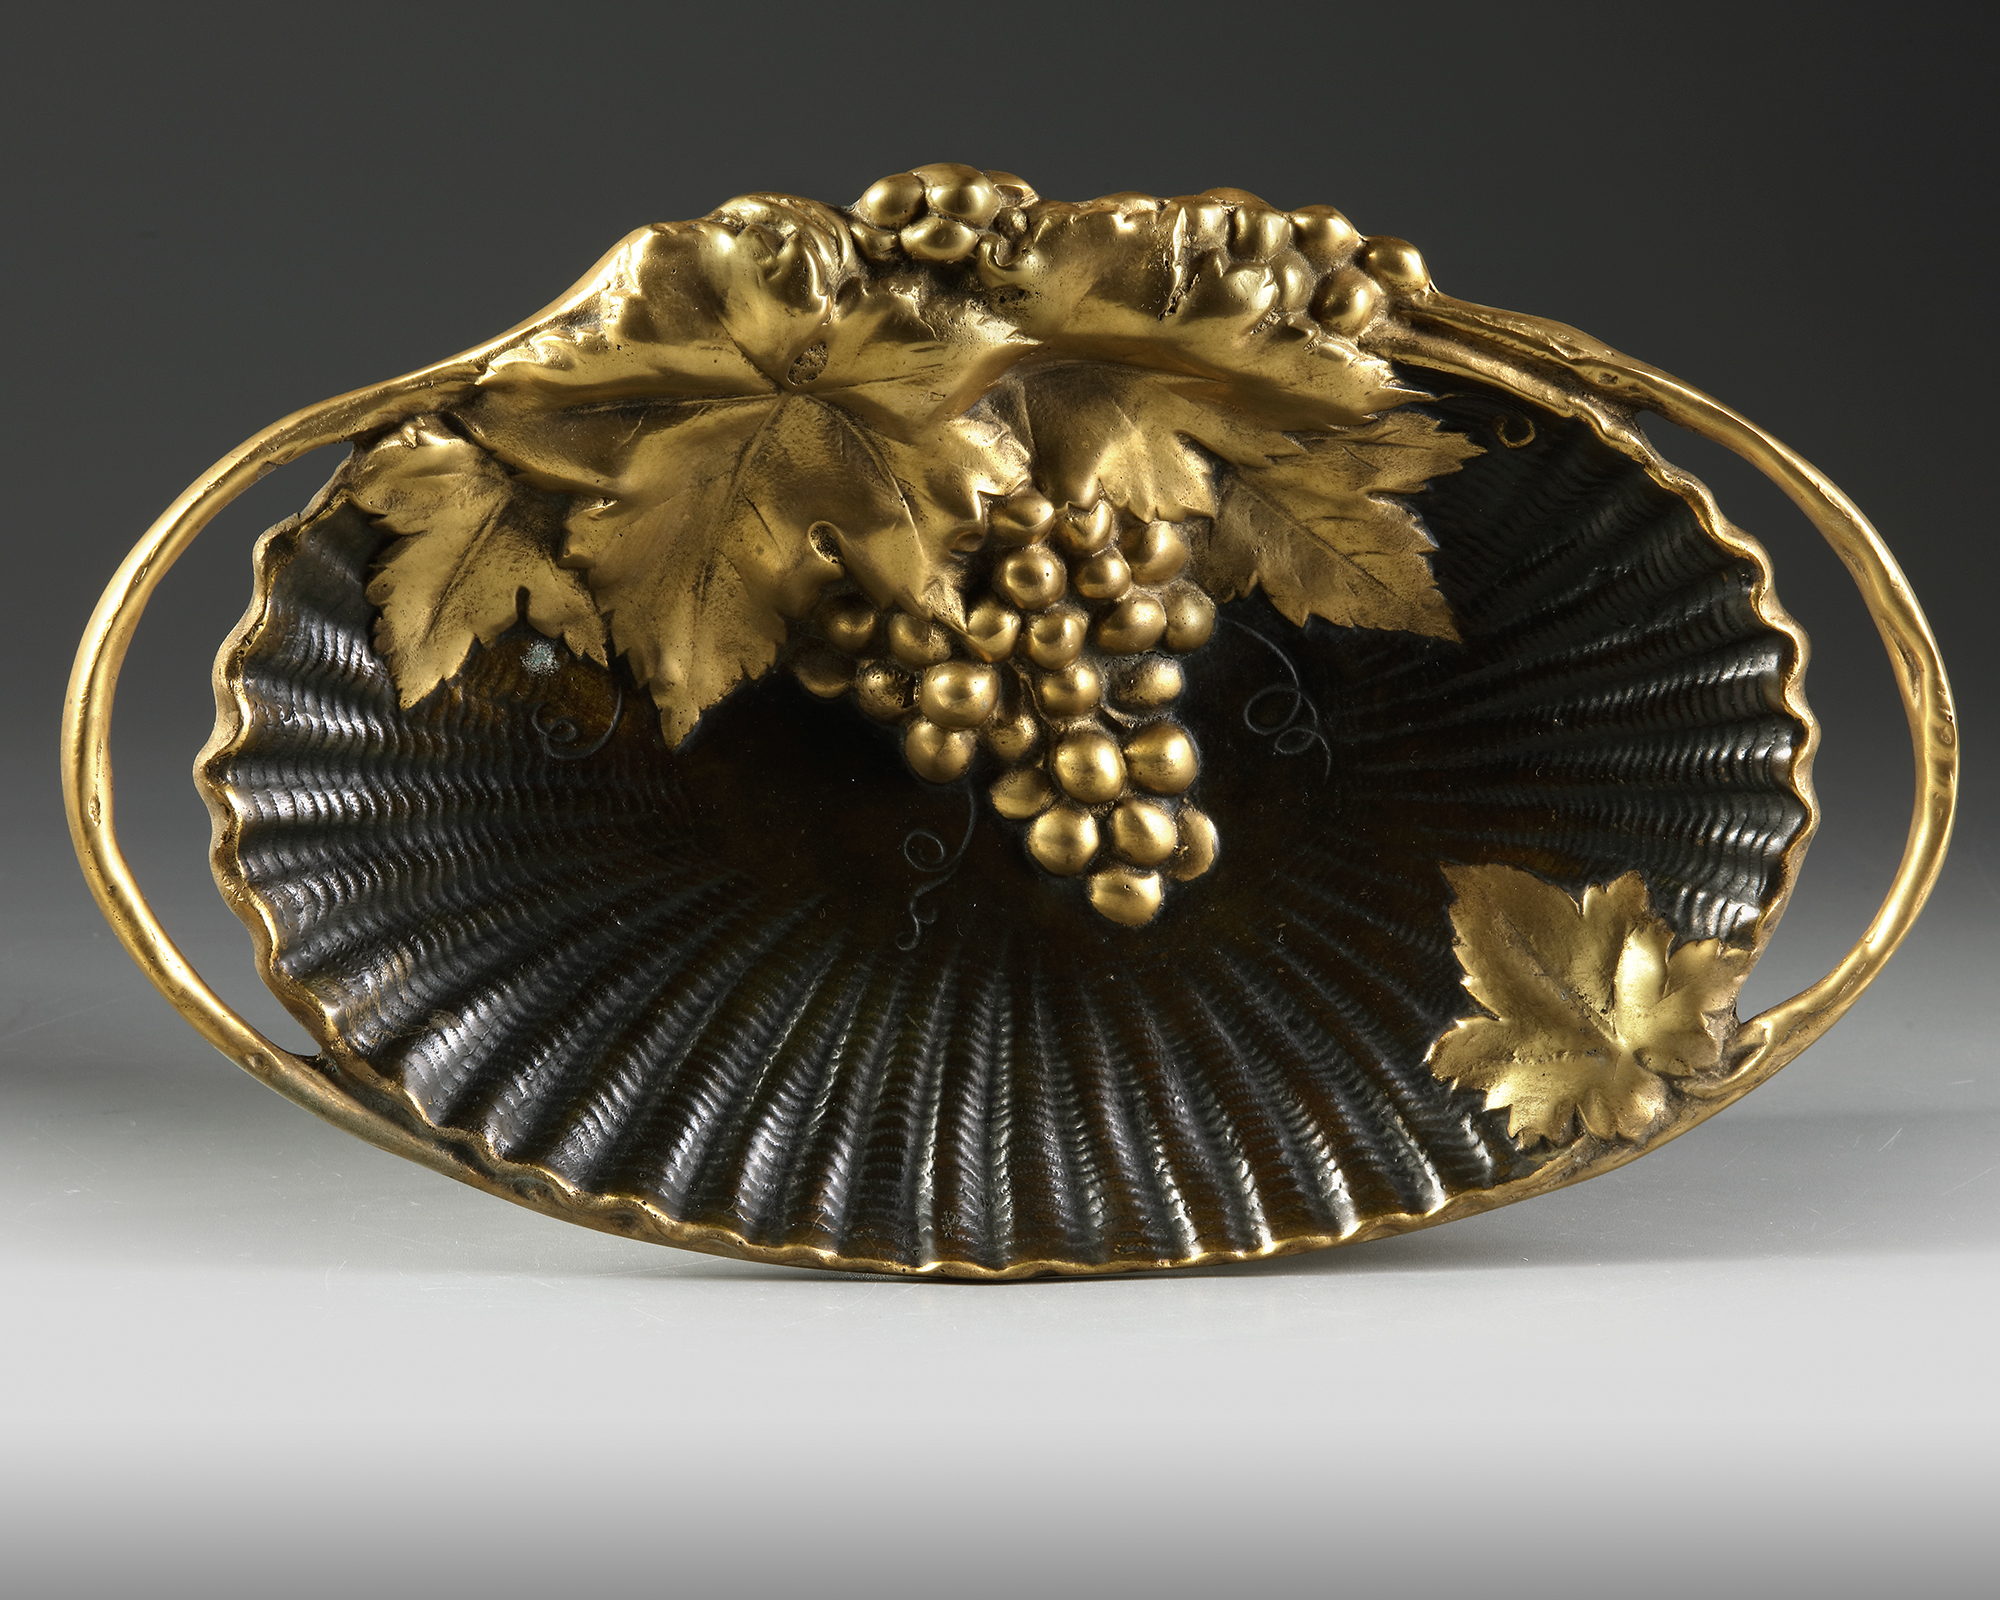 A FRENCH GILT BRONZE 'VIDE POCHE', CIRCA 1900 - Image 2 of 3